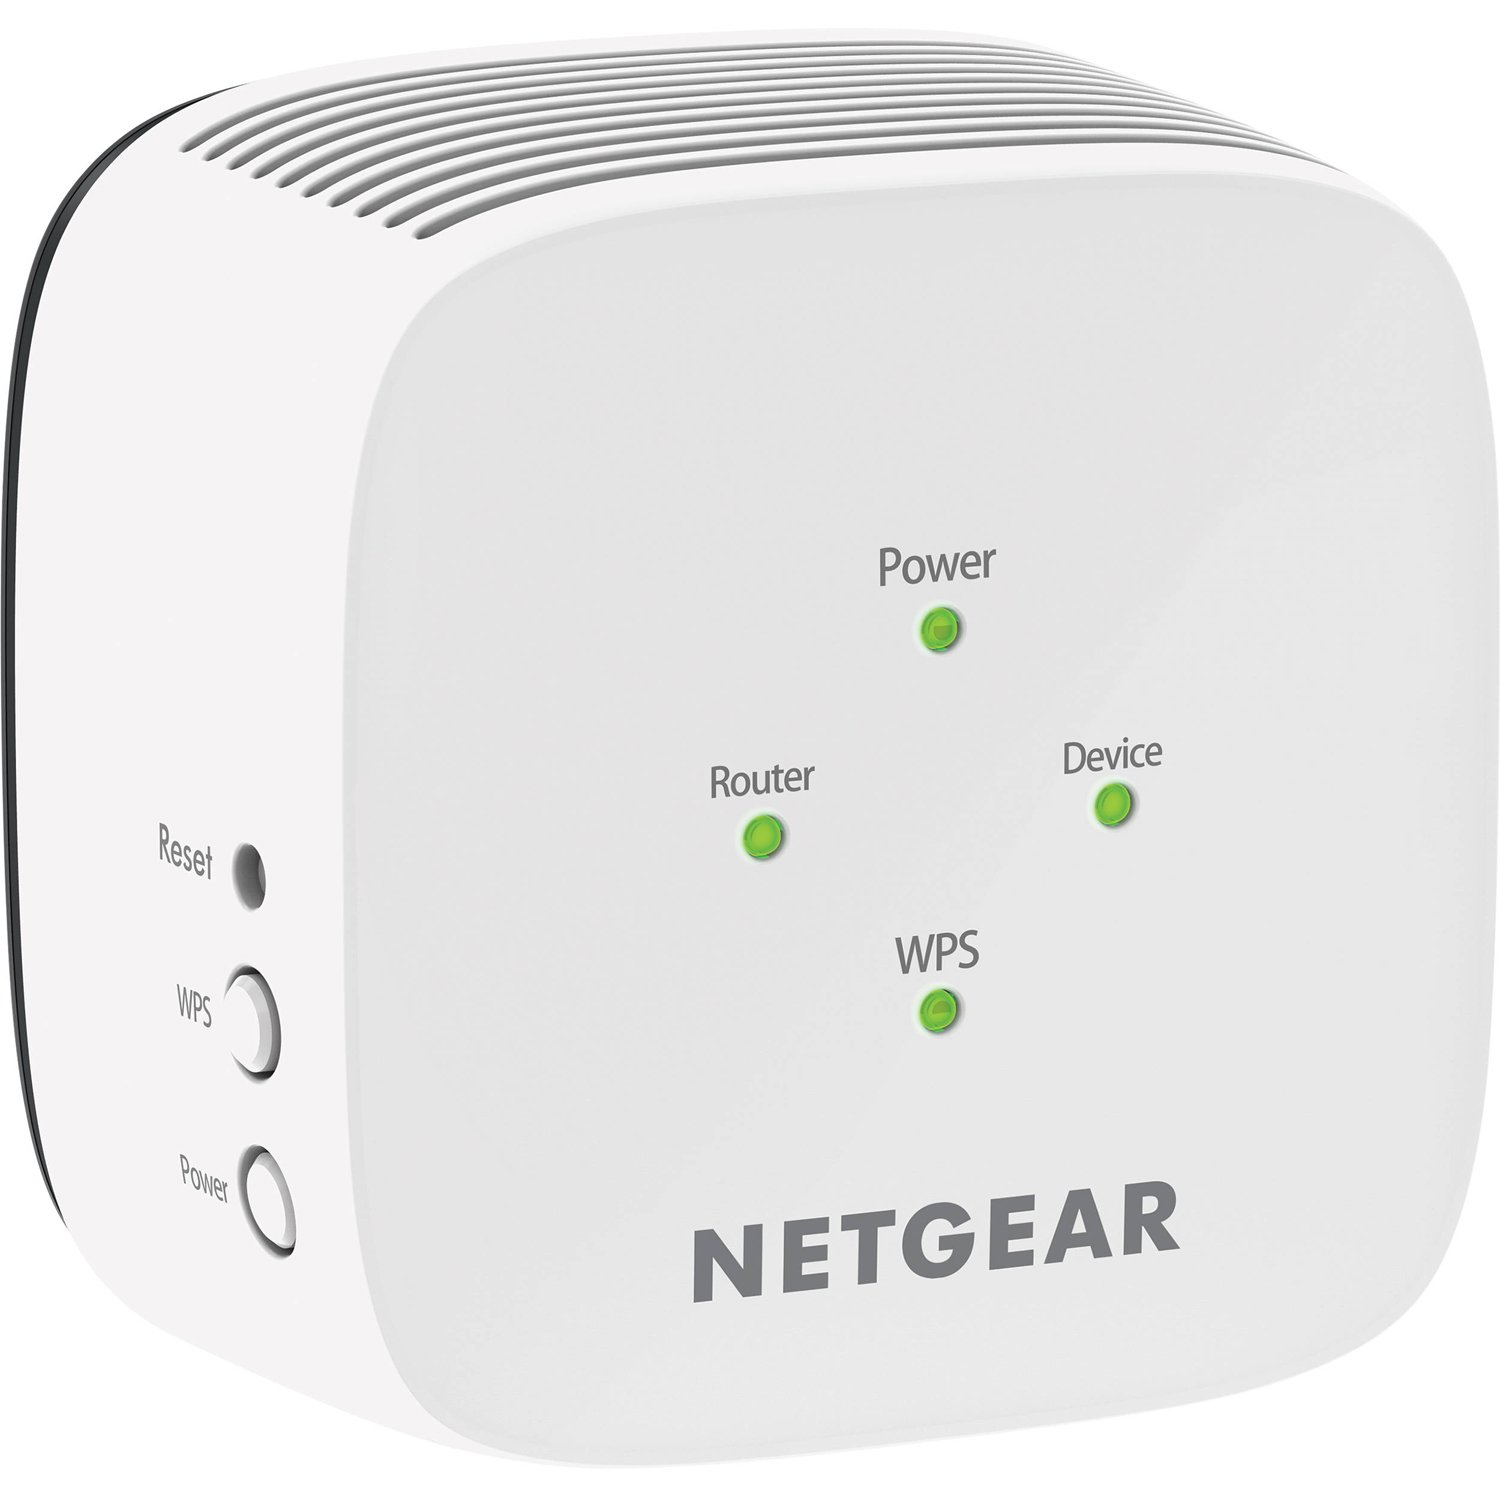 Netgear EX6110 AC1200 Dual Band WiFi Wireless Range Extender